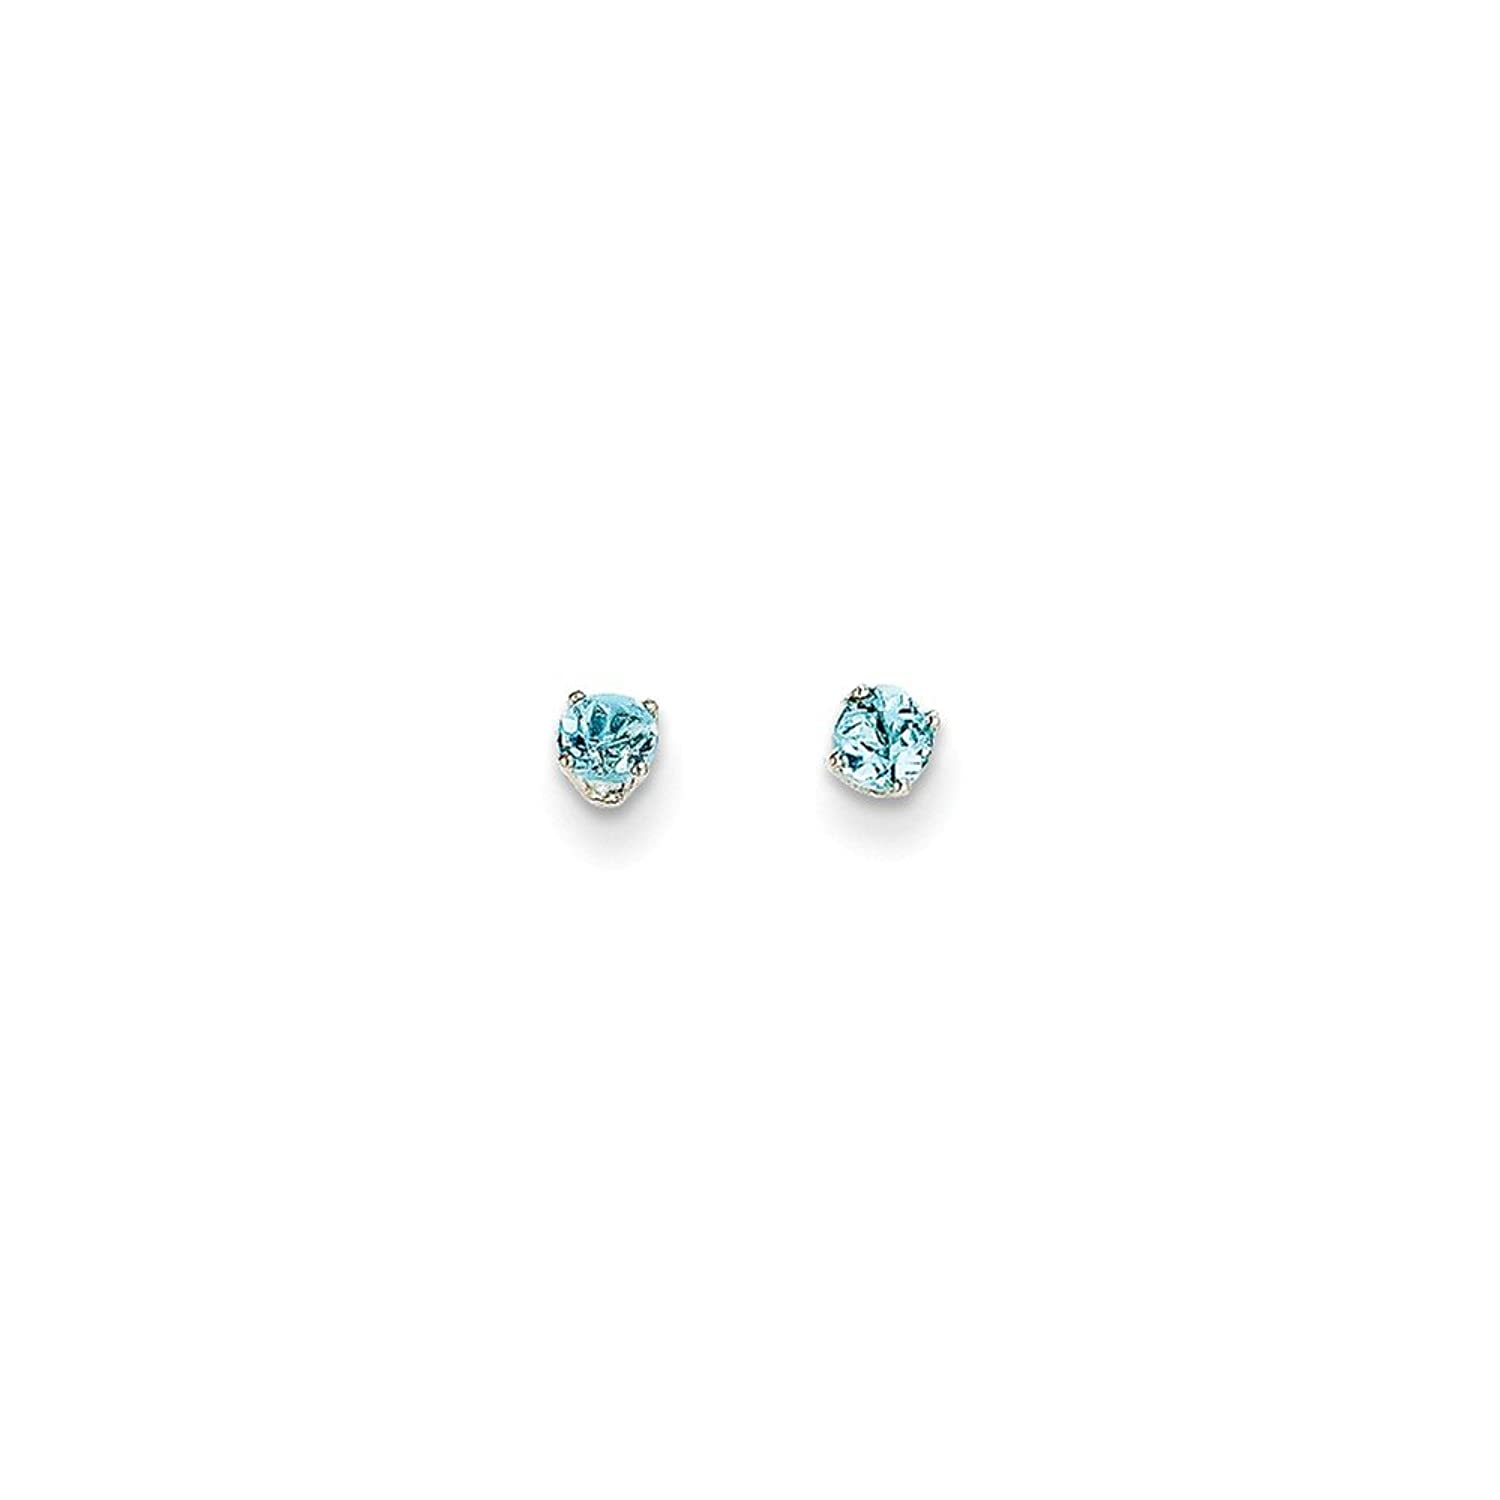 14k White Gold 3mm Blue Topaz Stud Earrings, Gem Ctw.0.3